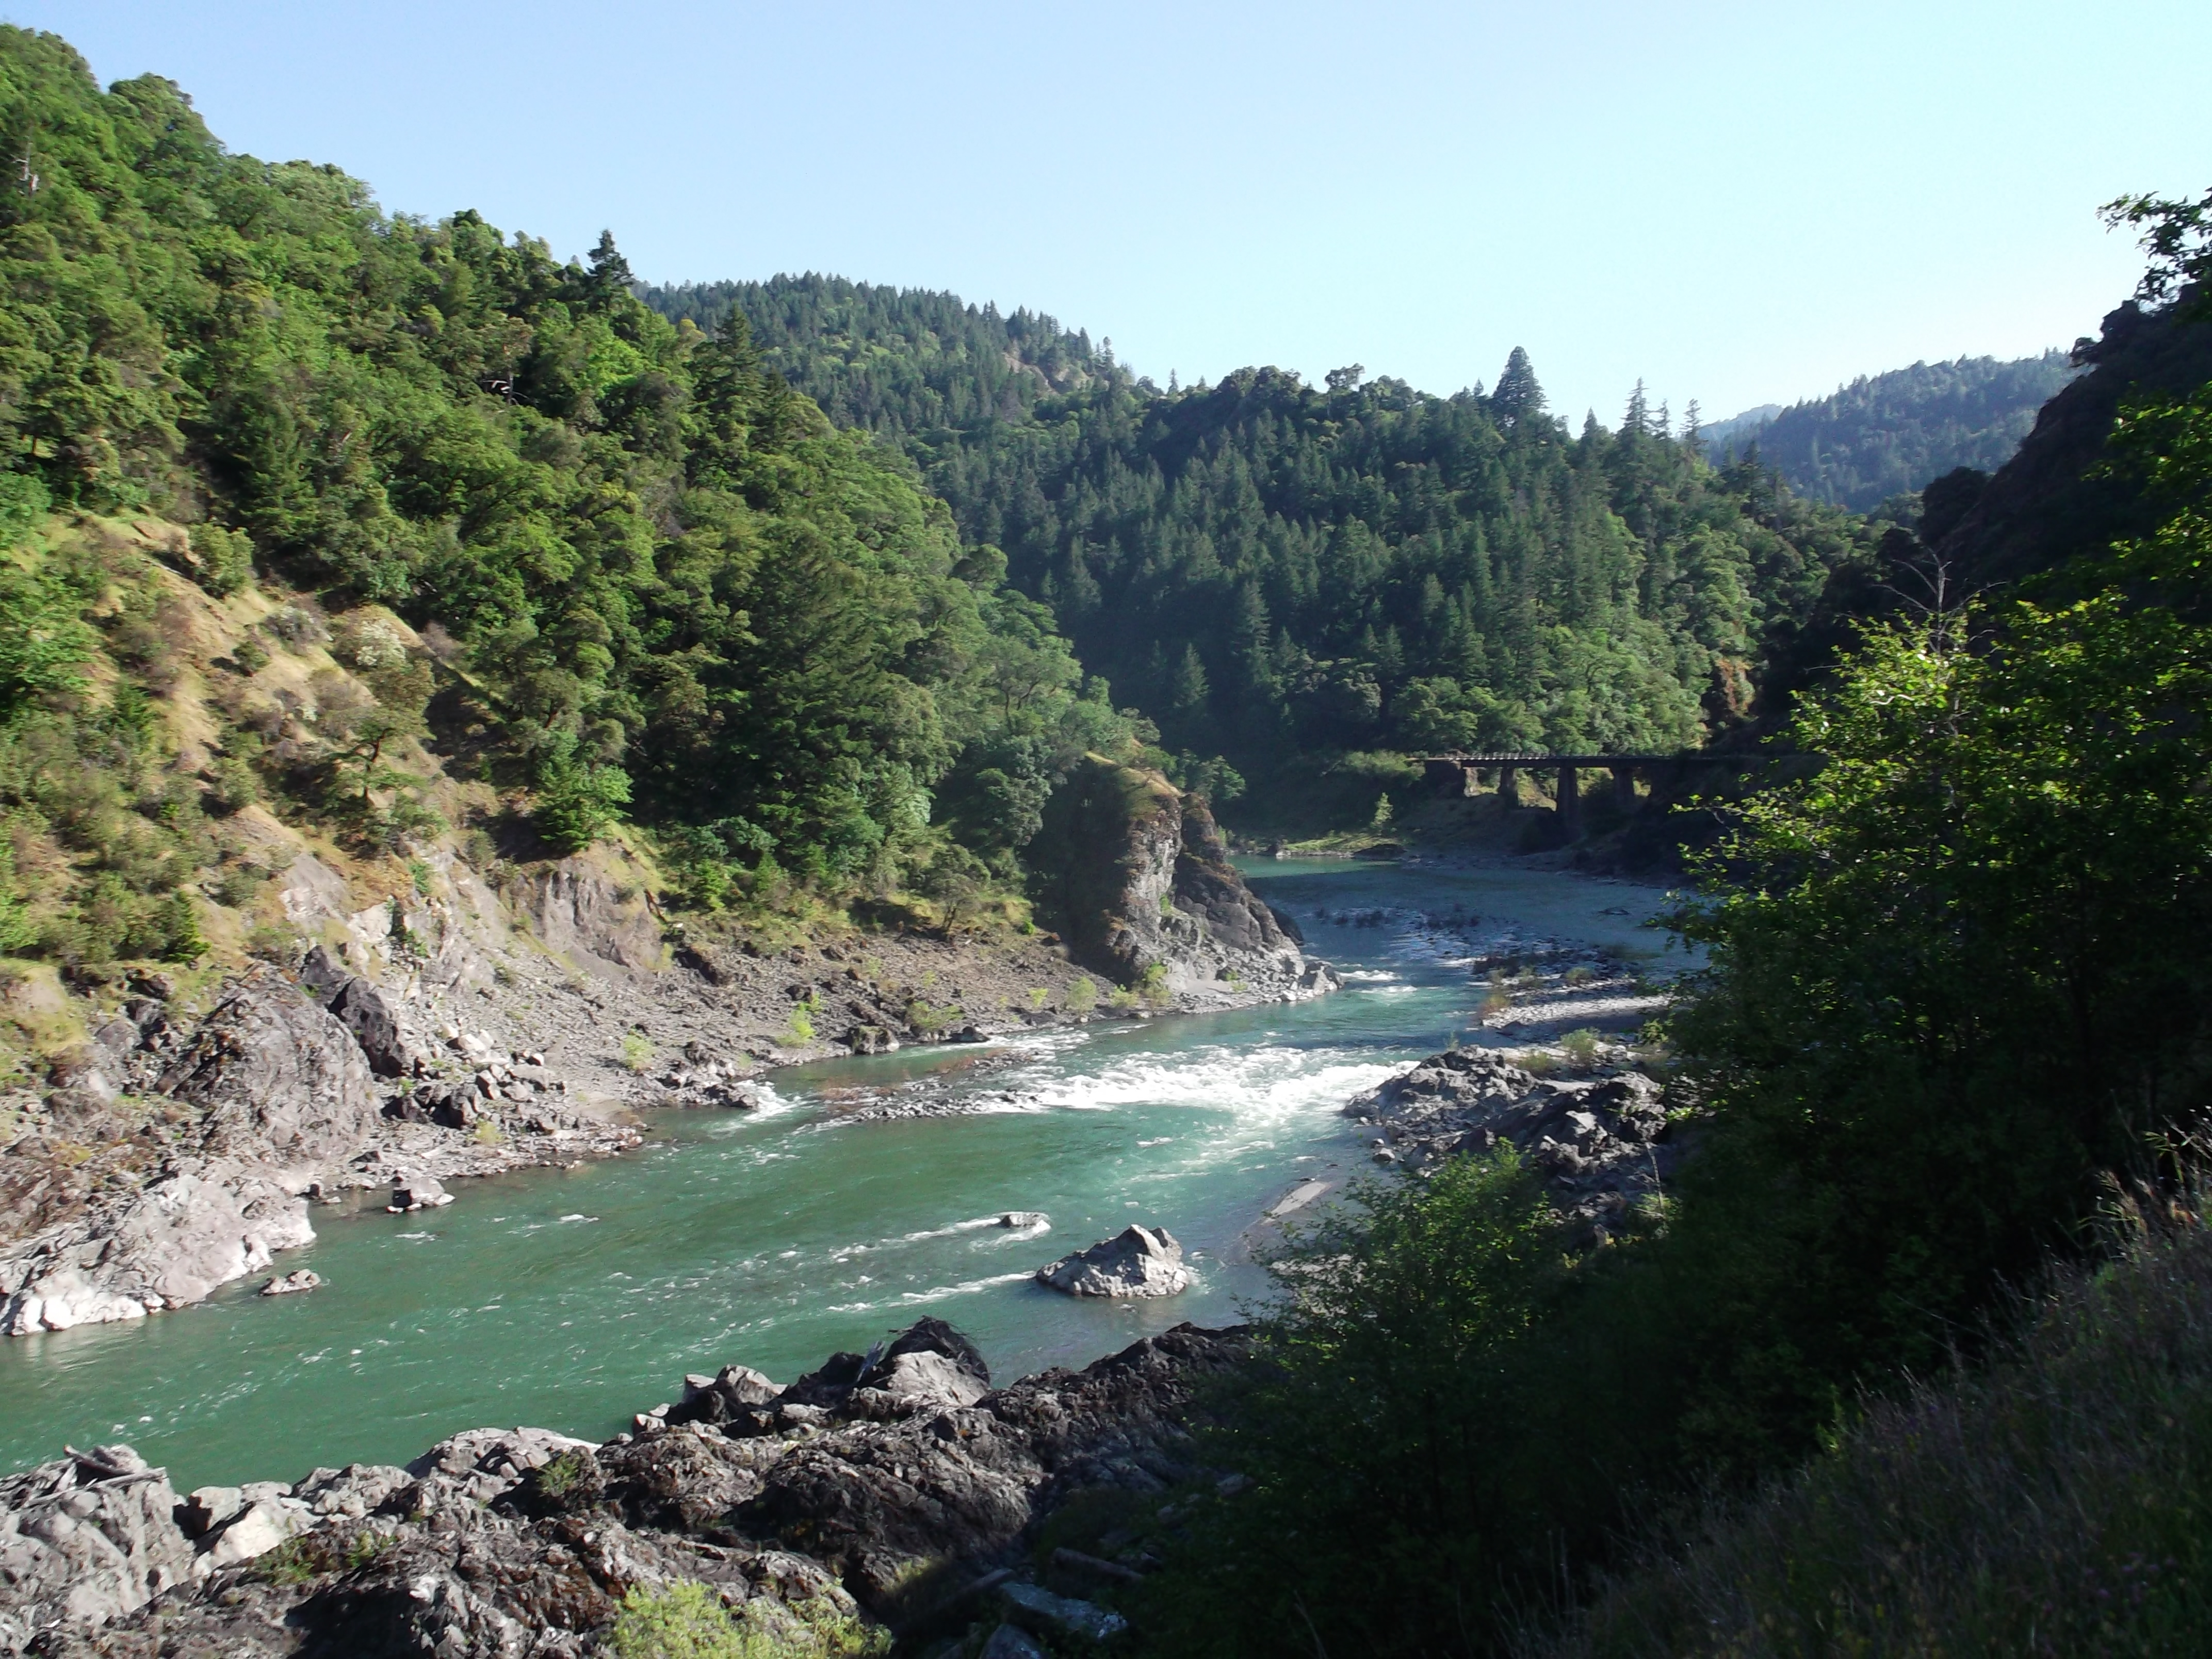 The Eel River, at Blue Rock Creek, Mendocino County. (photo by D. Speredelozzi)